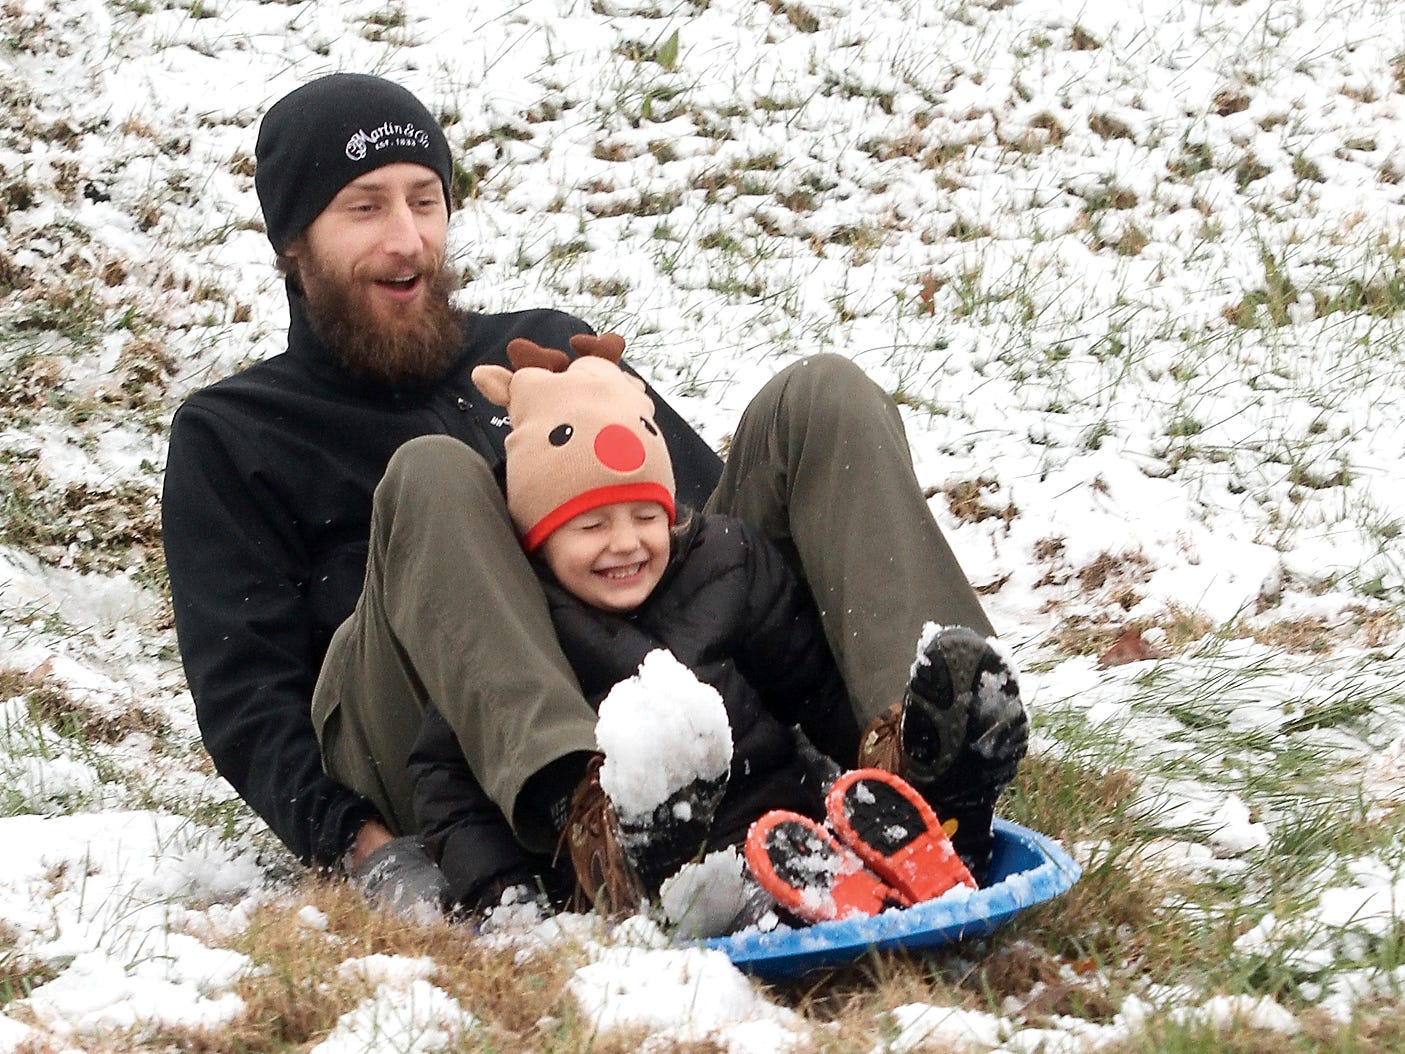 Luke Dunnewold and son Judah enjoy a sled ride down the hill at Foothills Mall in Maryville, Tenn. on Dec. 9. after the first snow of the season.